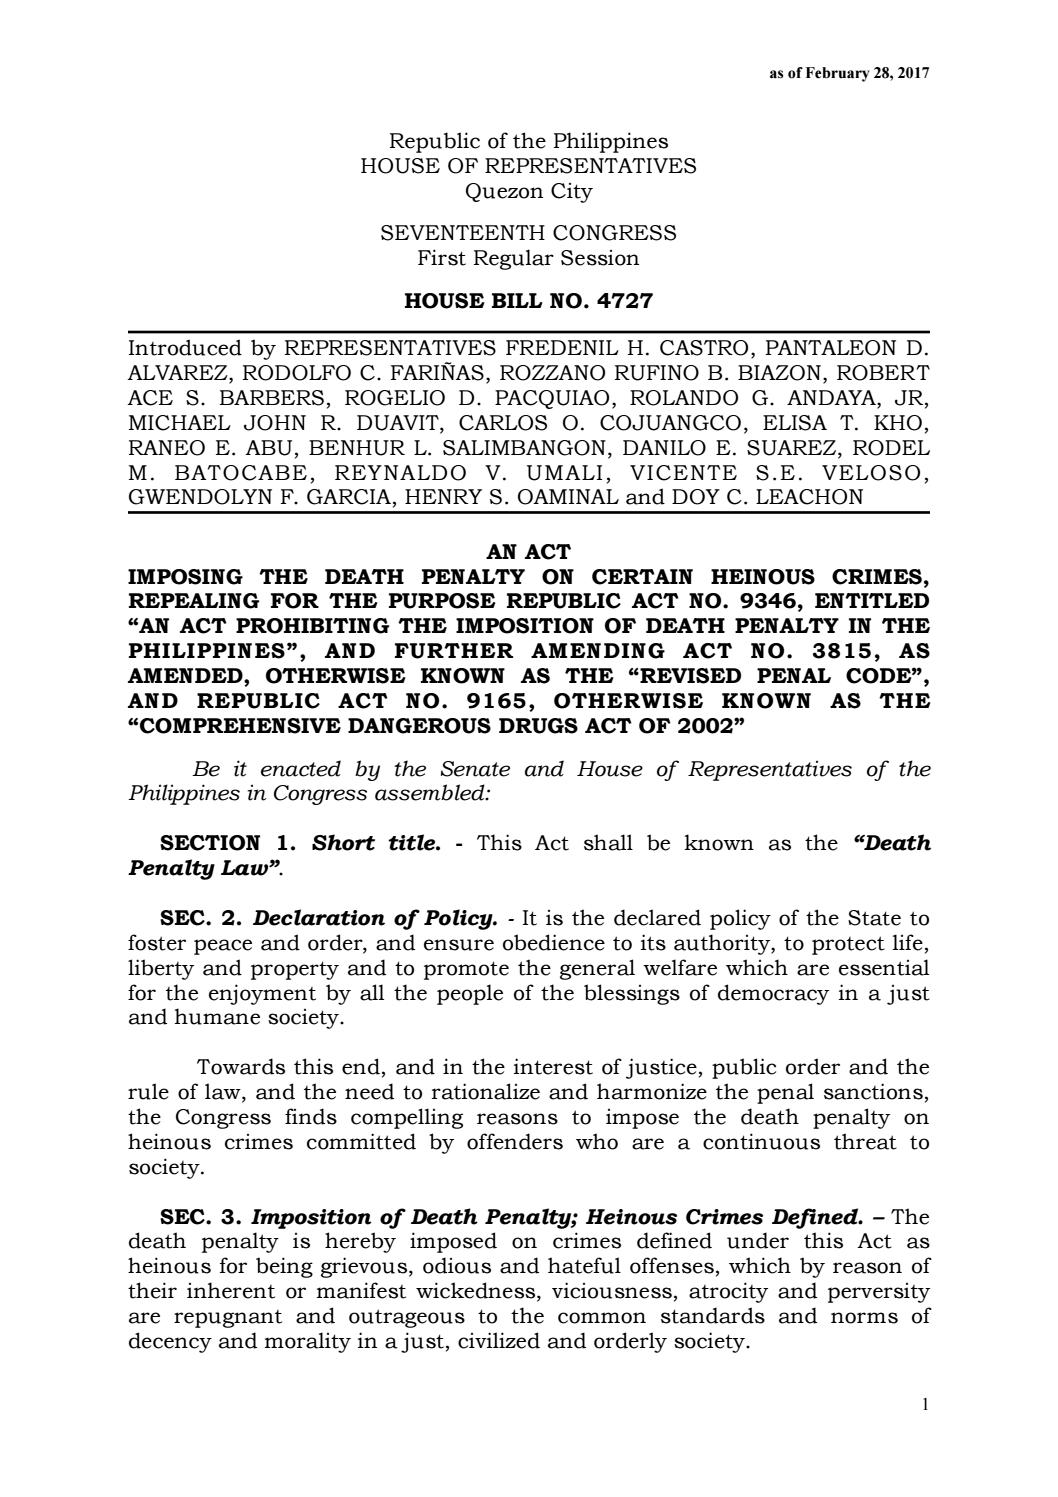 012 Against Death Penalty Essay Page 1 Unique Anti Tagalog Conclusion Examples Full